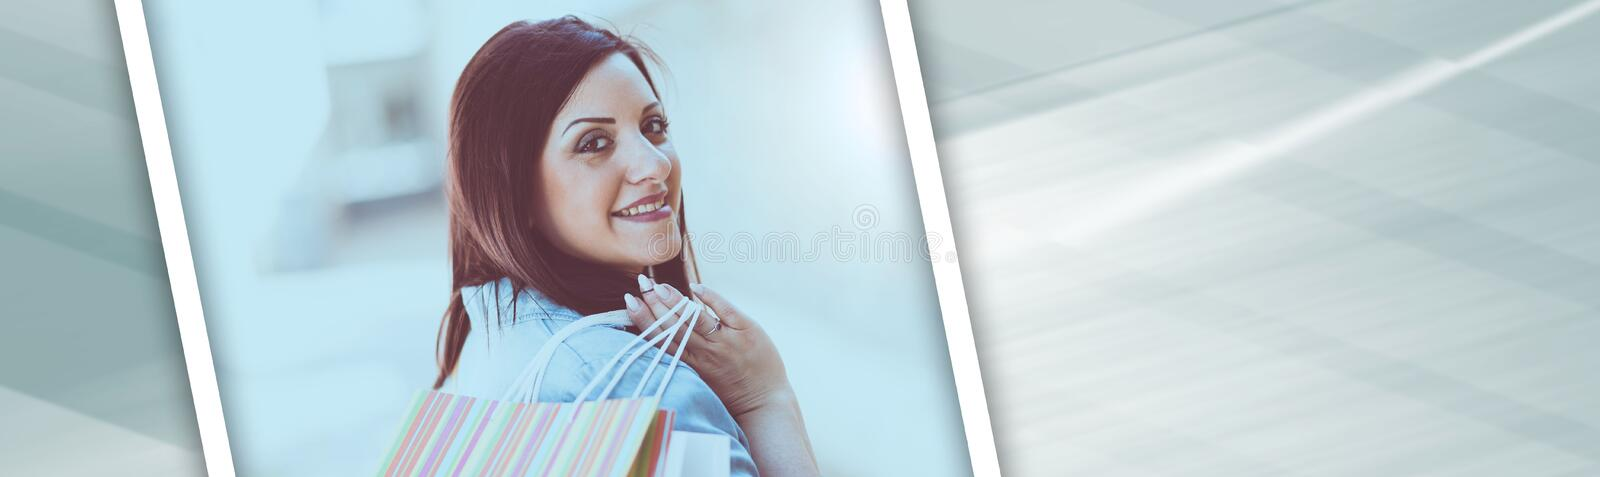 Young woman walking with shopping bags in hand, panoramic banner stock photo